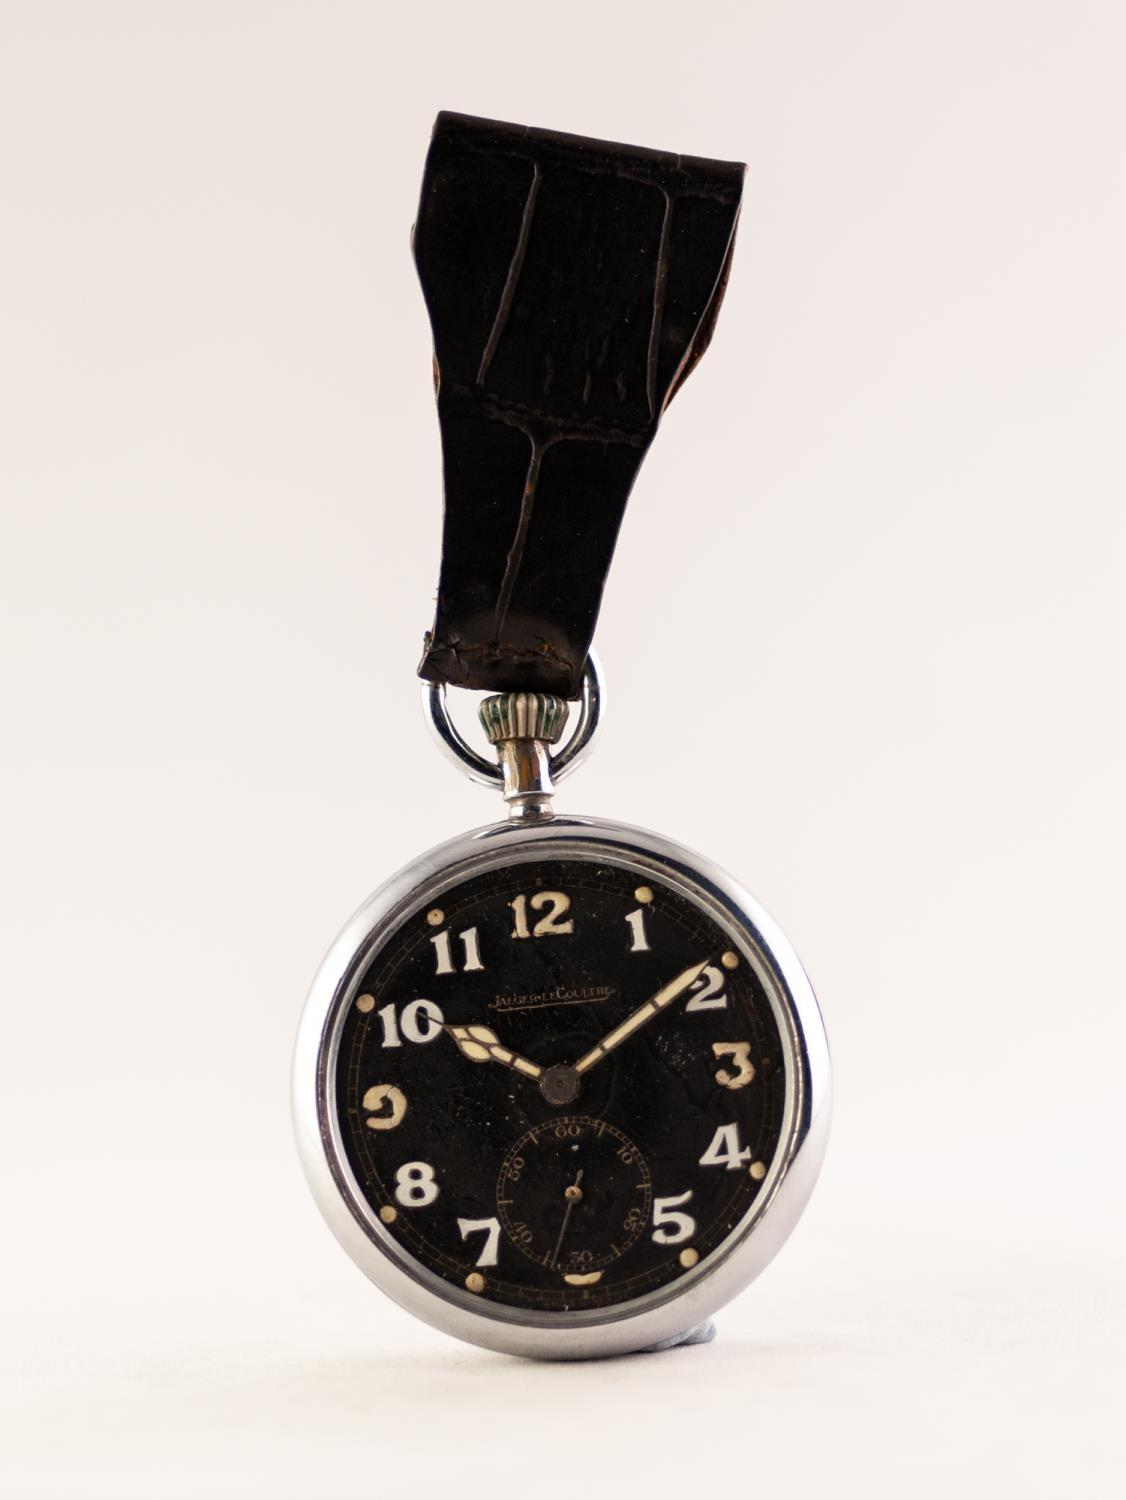 Lot 34 - JAEGER LE COULTRE WW11 MILITARY SILVER PLATED OPEN FACE POCKET WATCH Black dial with Arabic hour